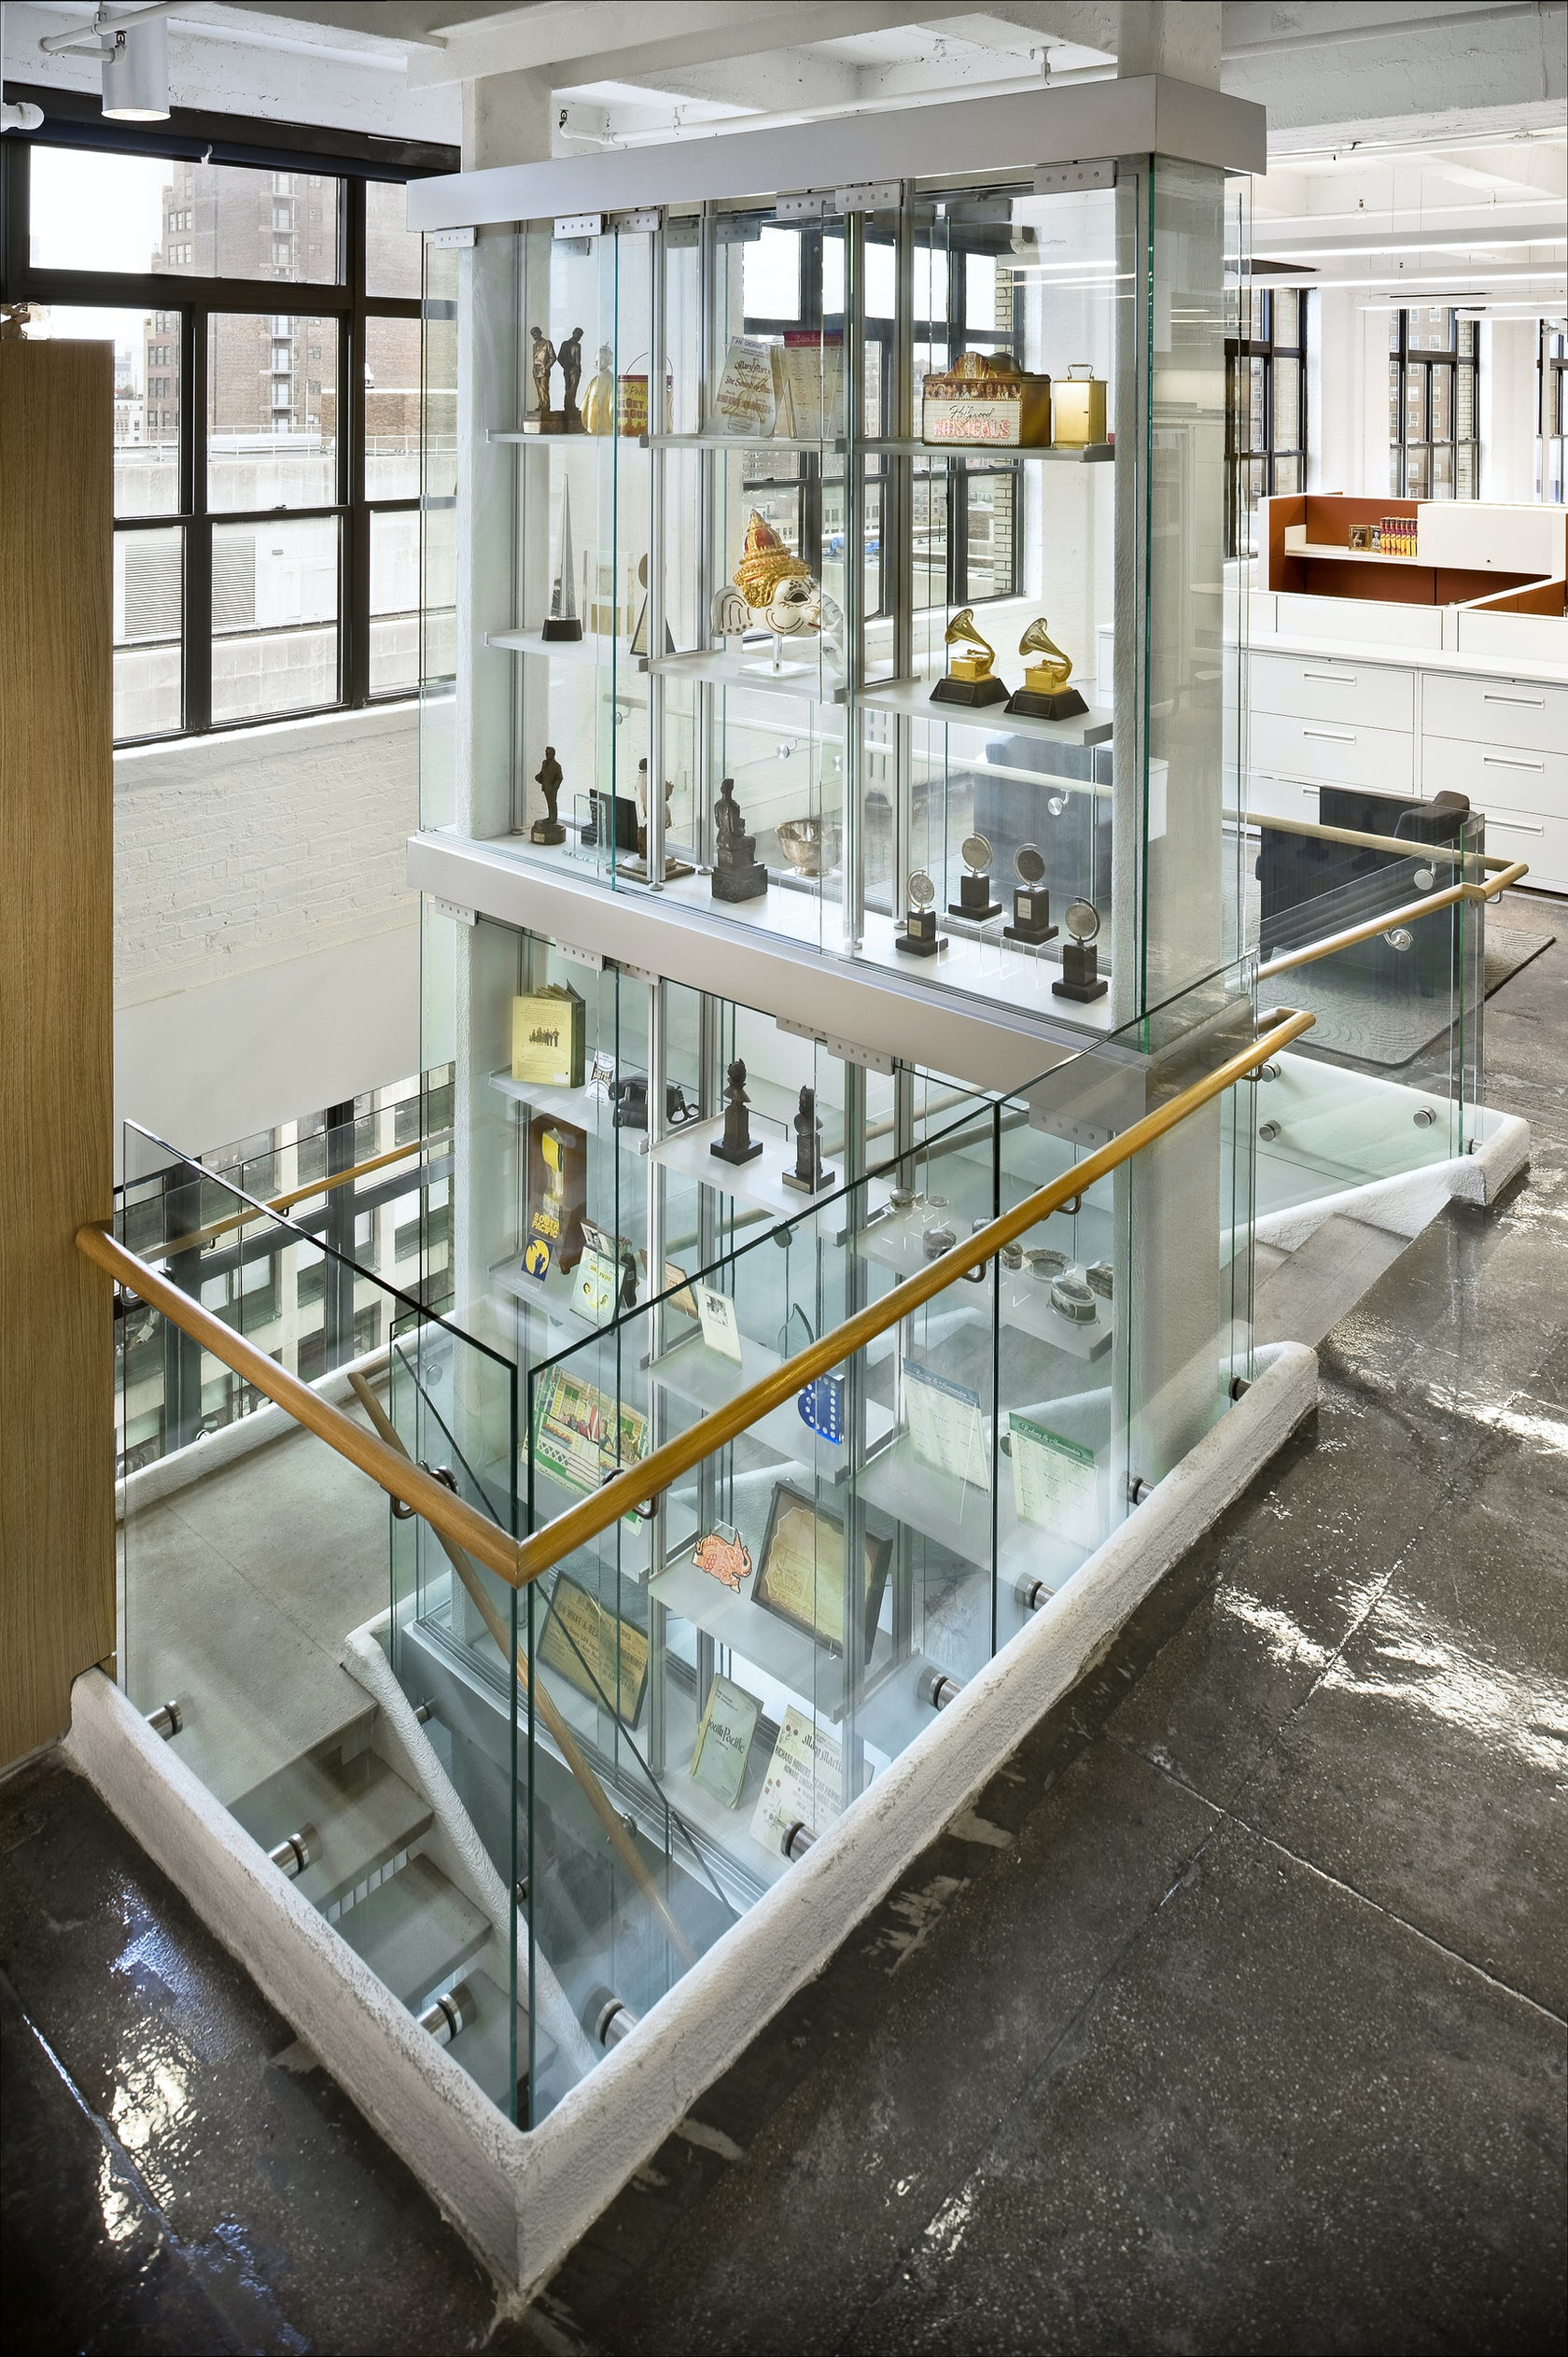 Rogers hammerstein offices architizer for 1633 broadway 28th floor new york ny 10019